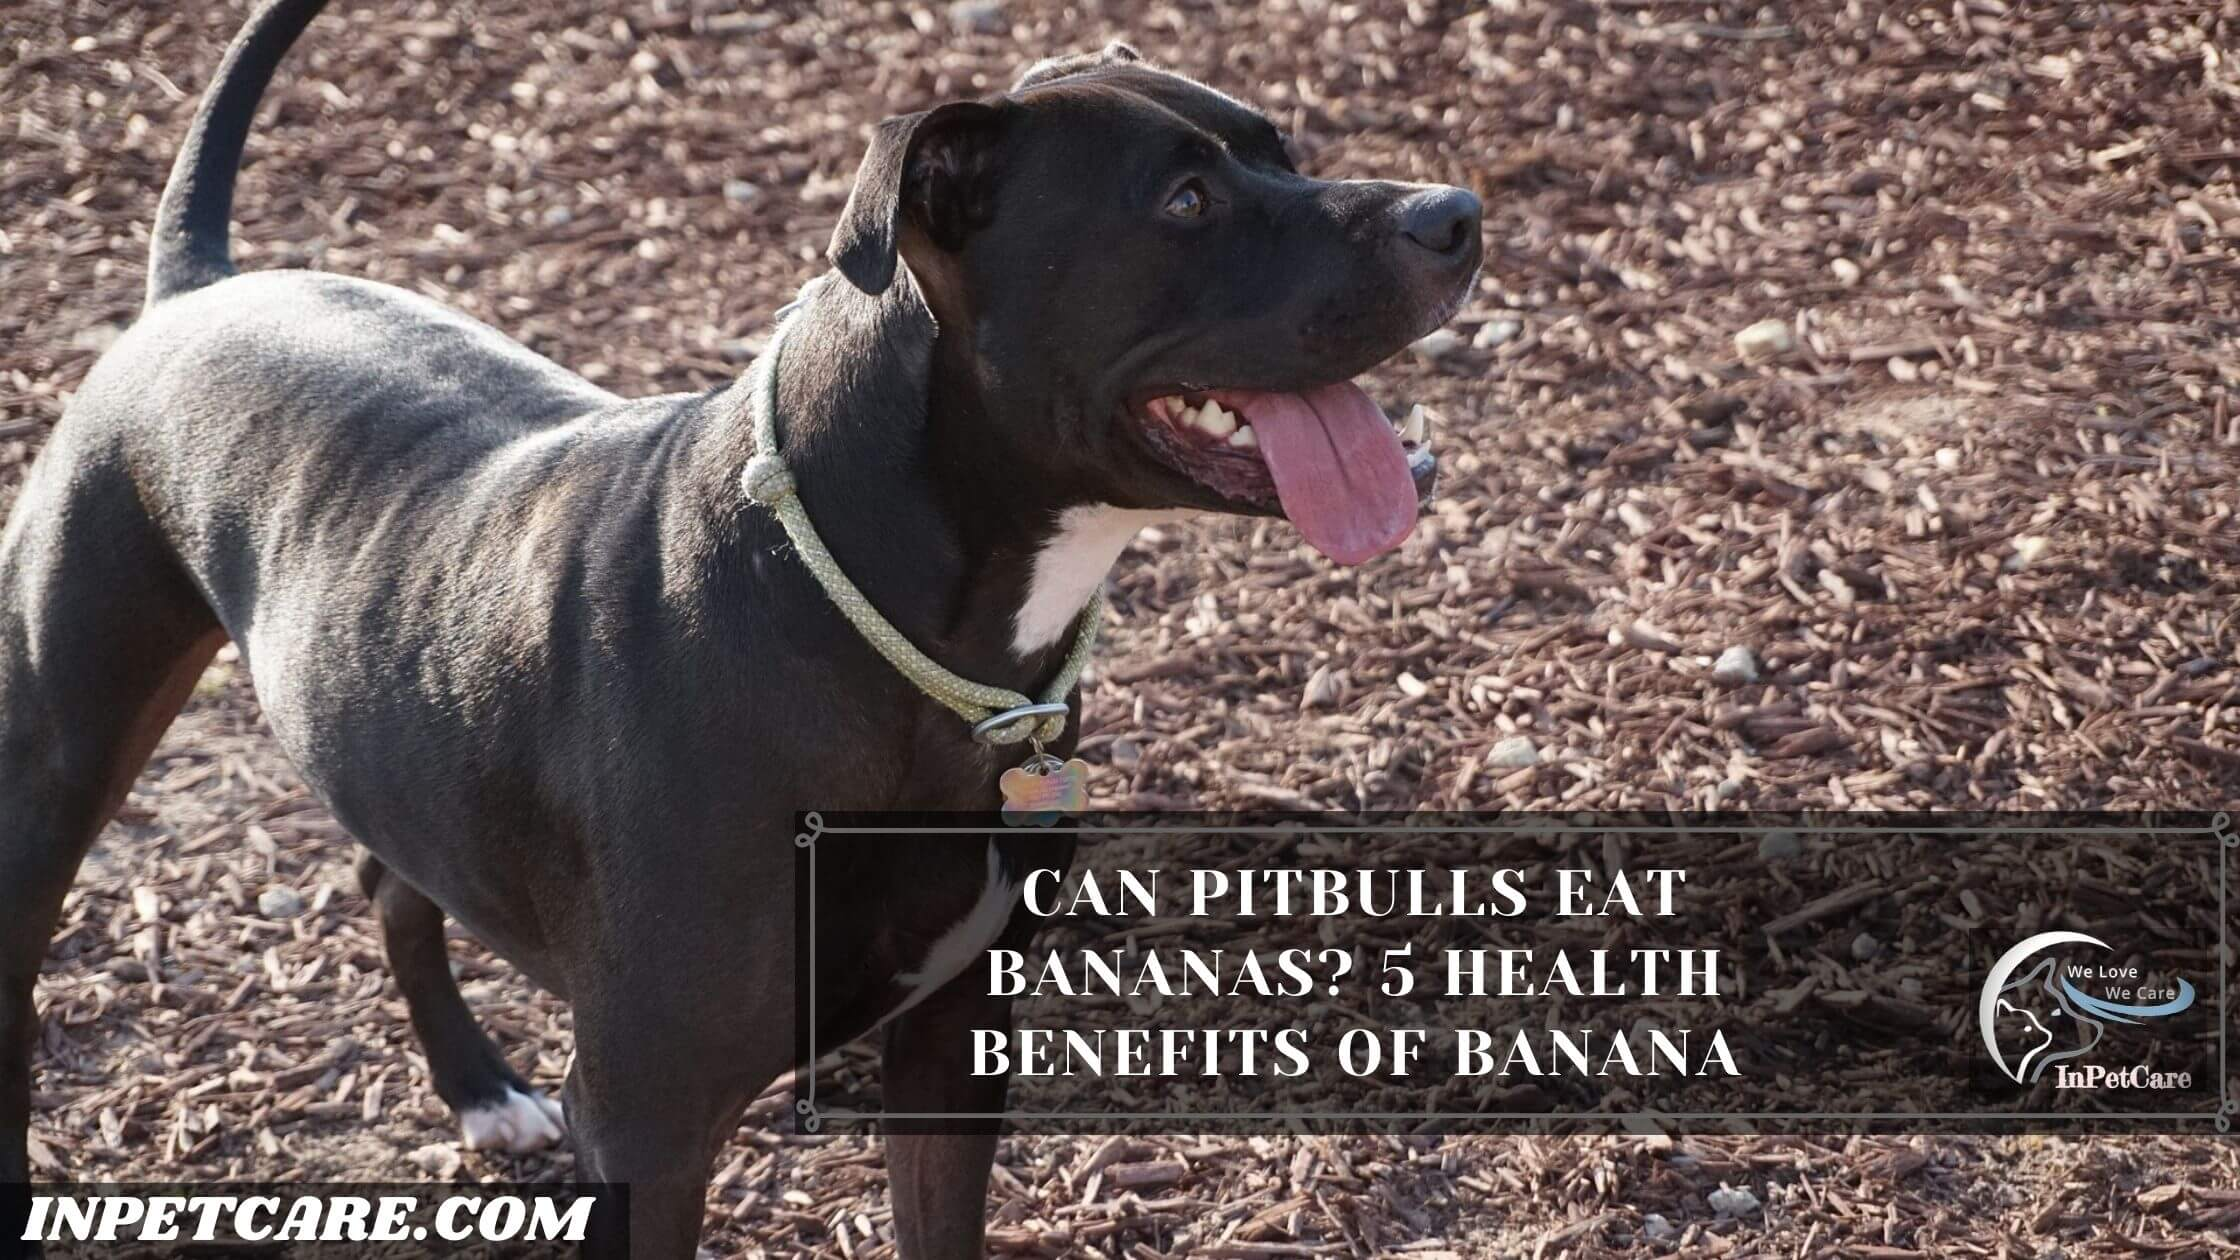 Can Pitbulls Eat Bananas, Can Pitbulls Eat Bananas peels, Can Pitbulls Eat Bananas chips